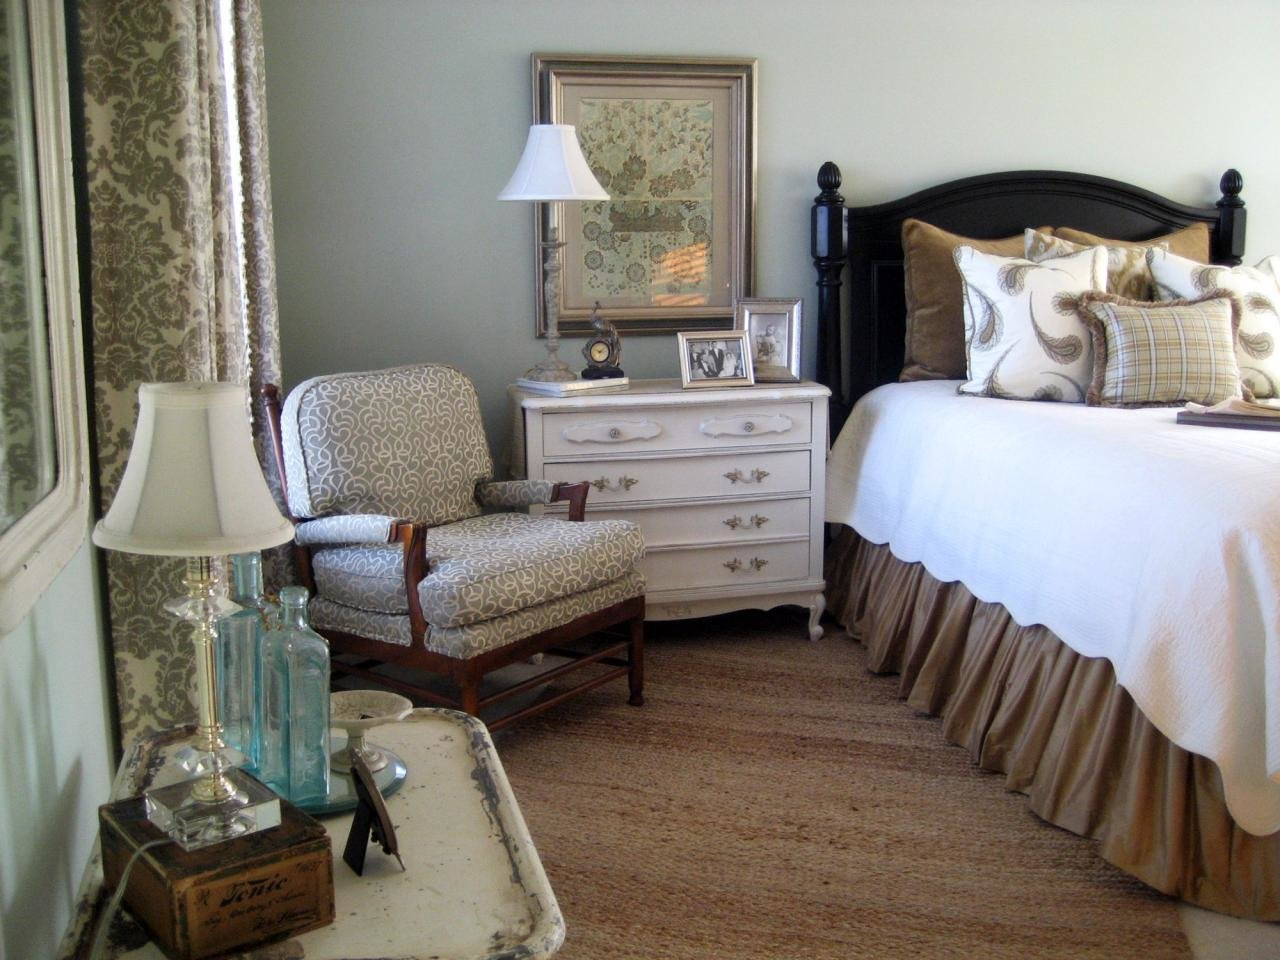 Best Stylish S*Xy Bedrooms Bedroom Decorating Ideas For With Pictures